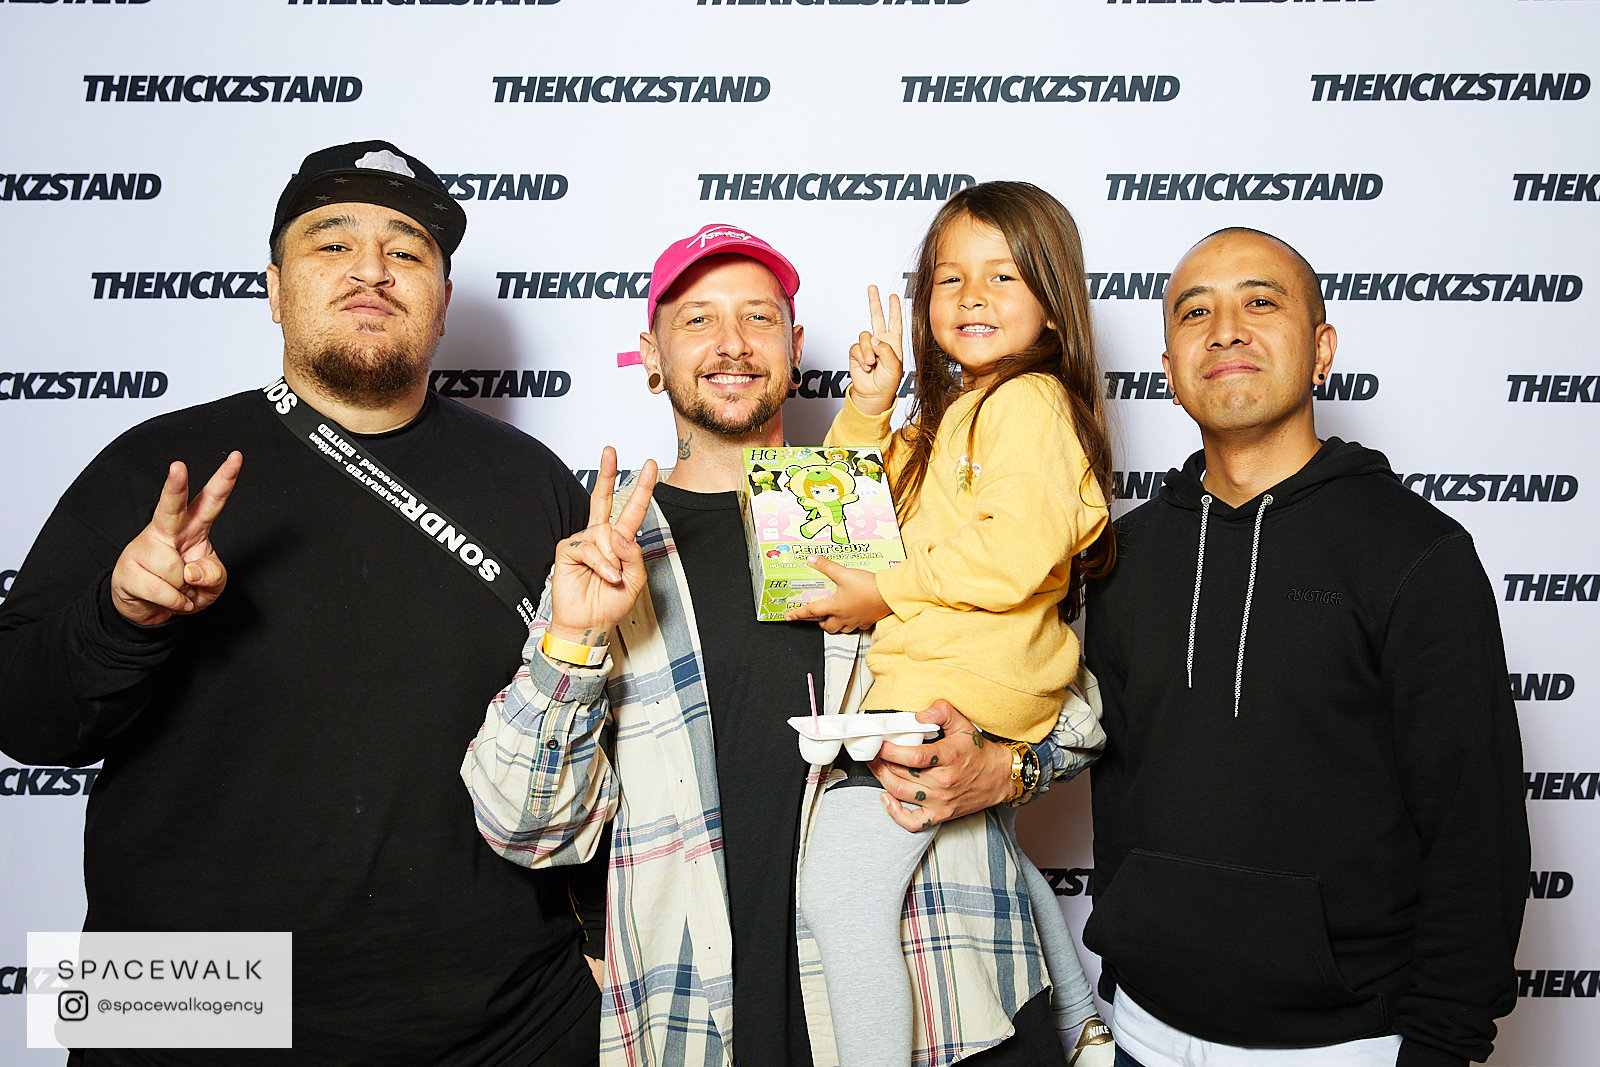 KICKZSTAND_BOOTH_060